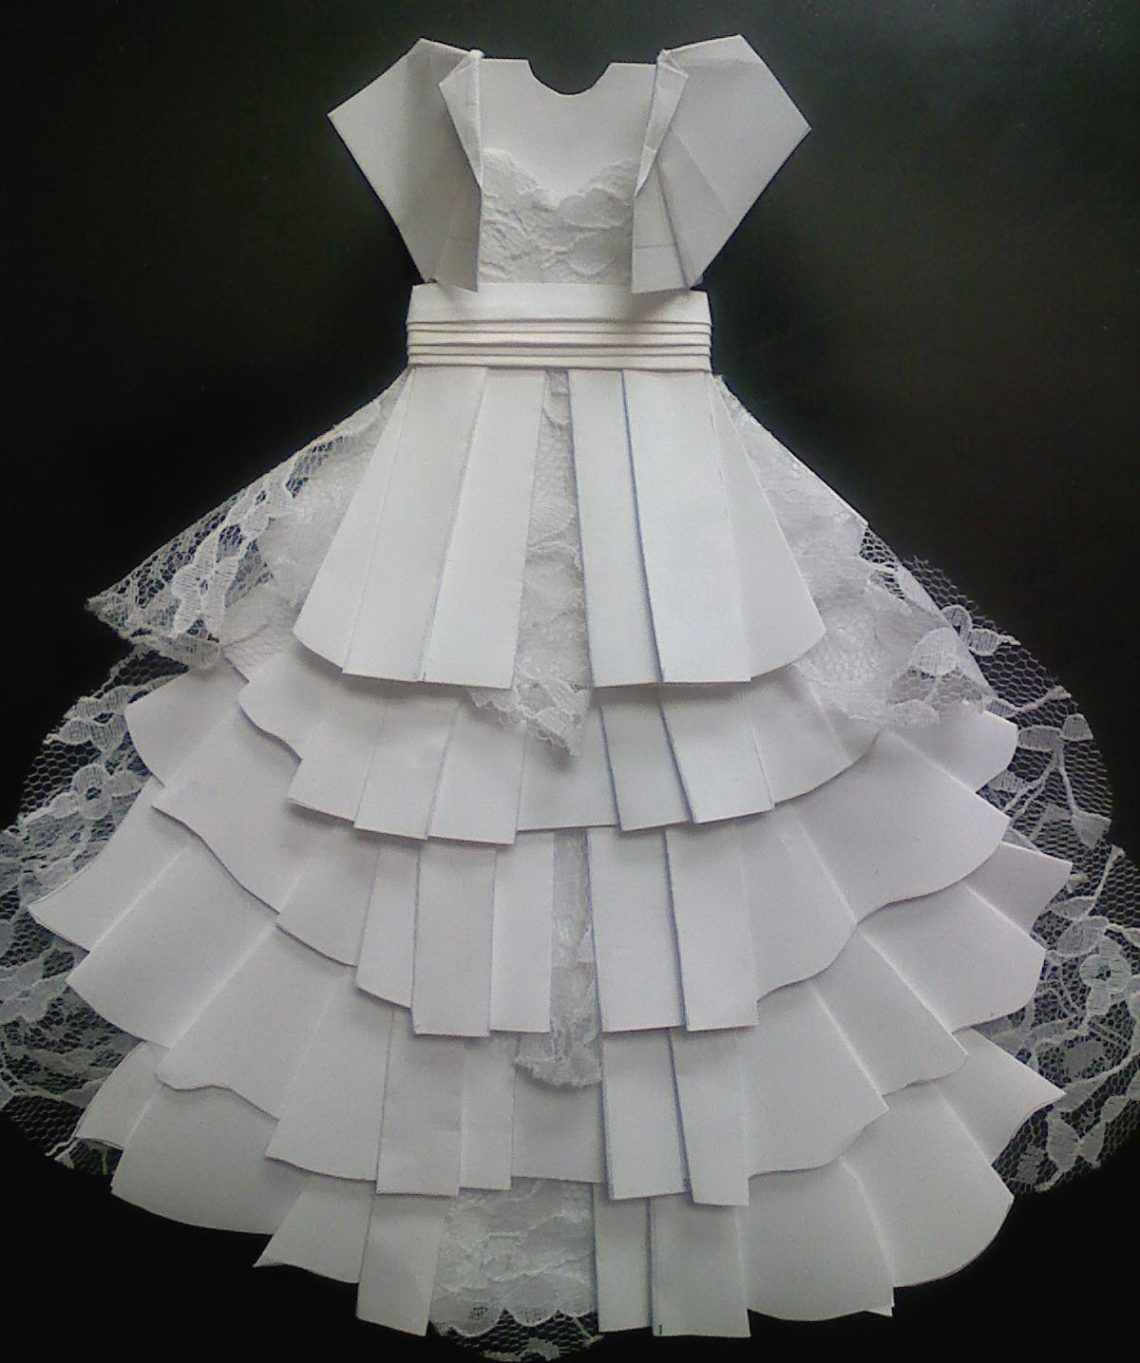 Origami ravishing origami dress origami wedding dress - Robe en origami ...